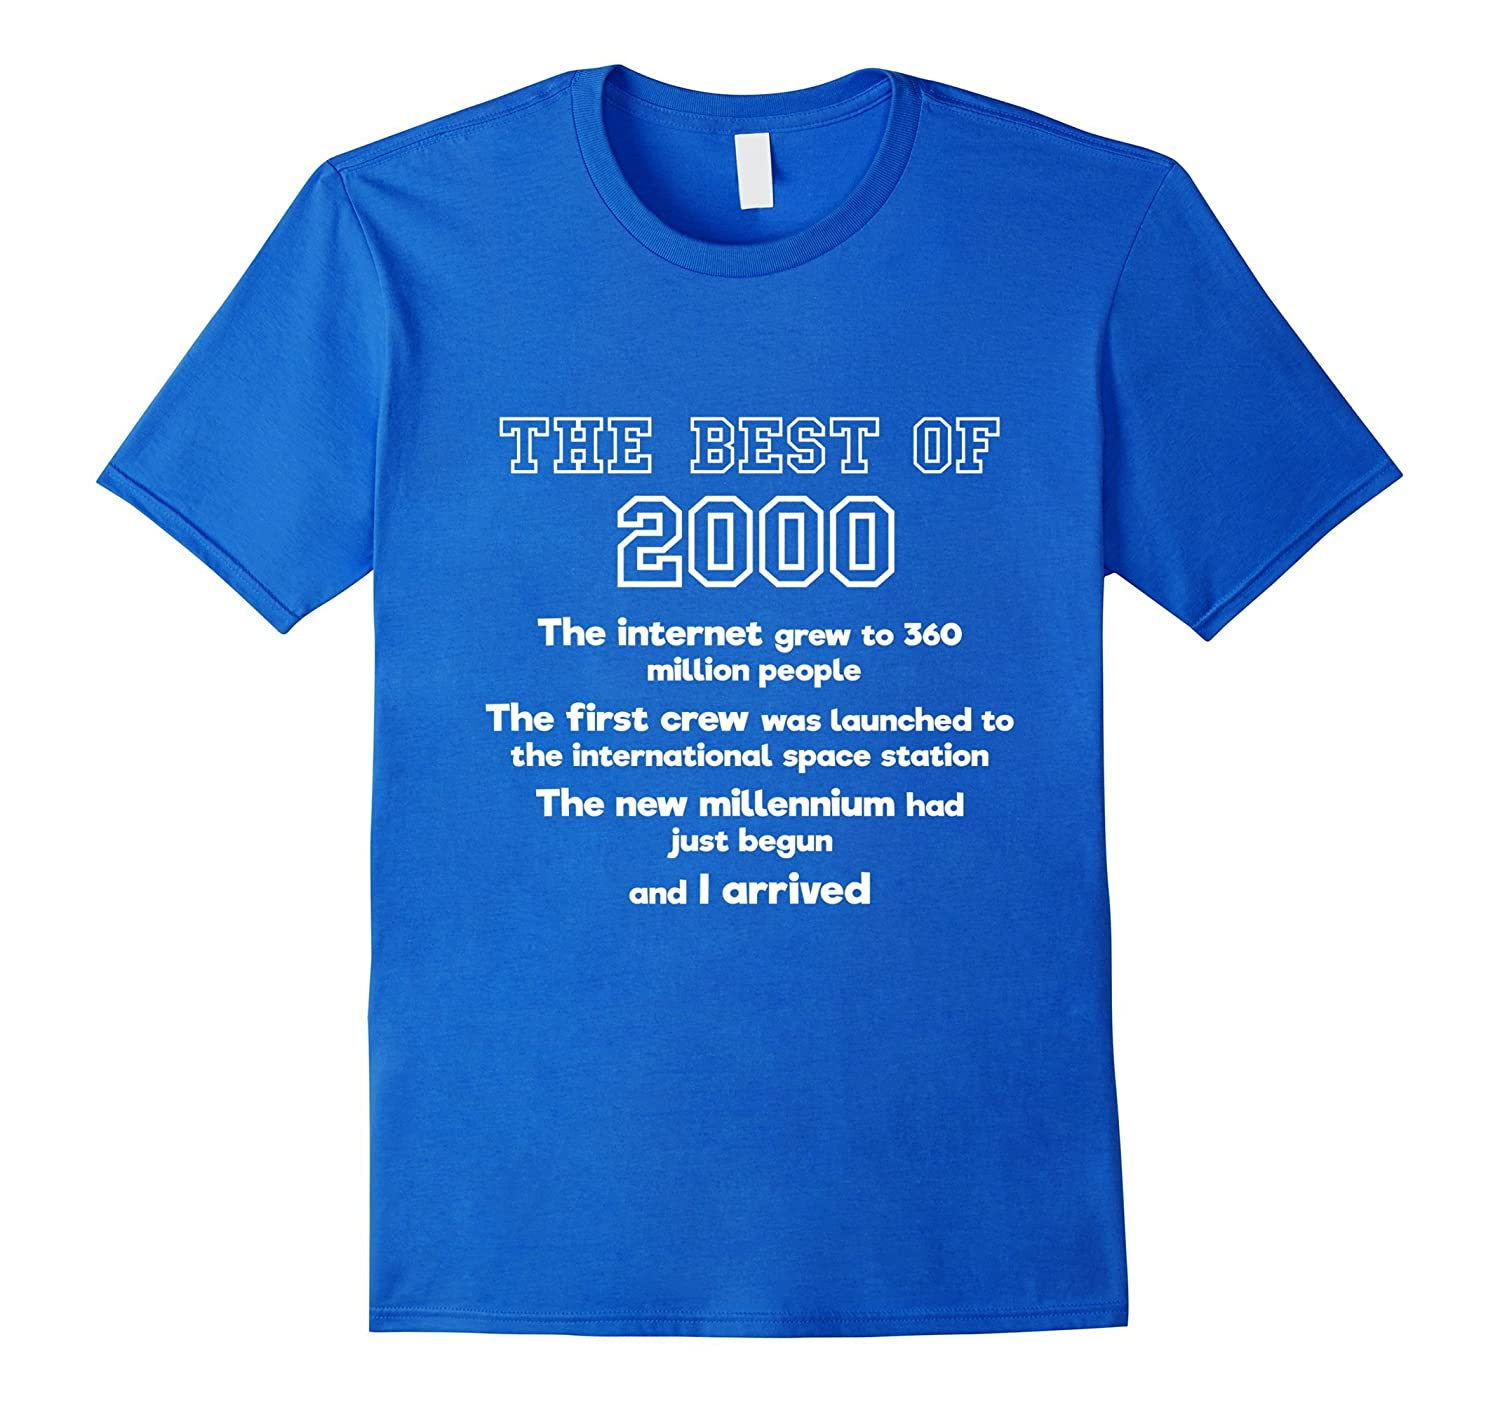 2000 17th Birthday T Shirt Gift For 17 Year Old Boys Girls PL